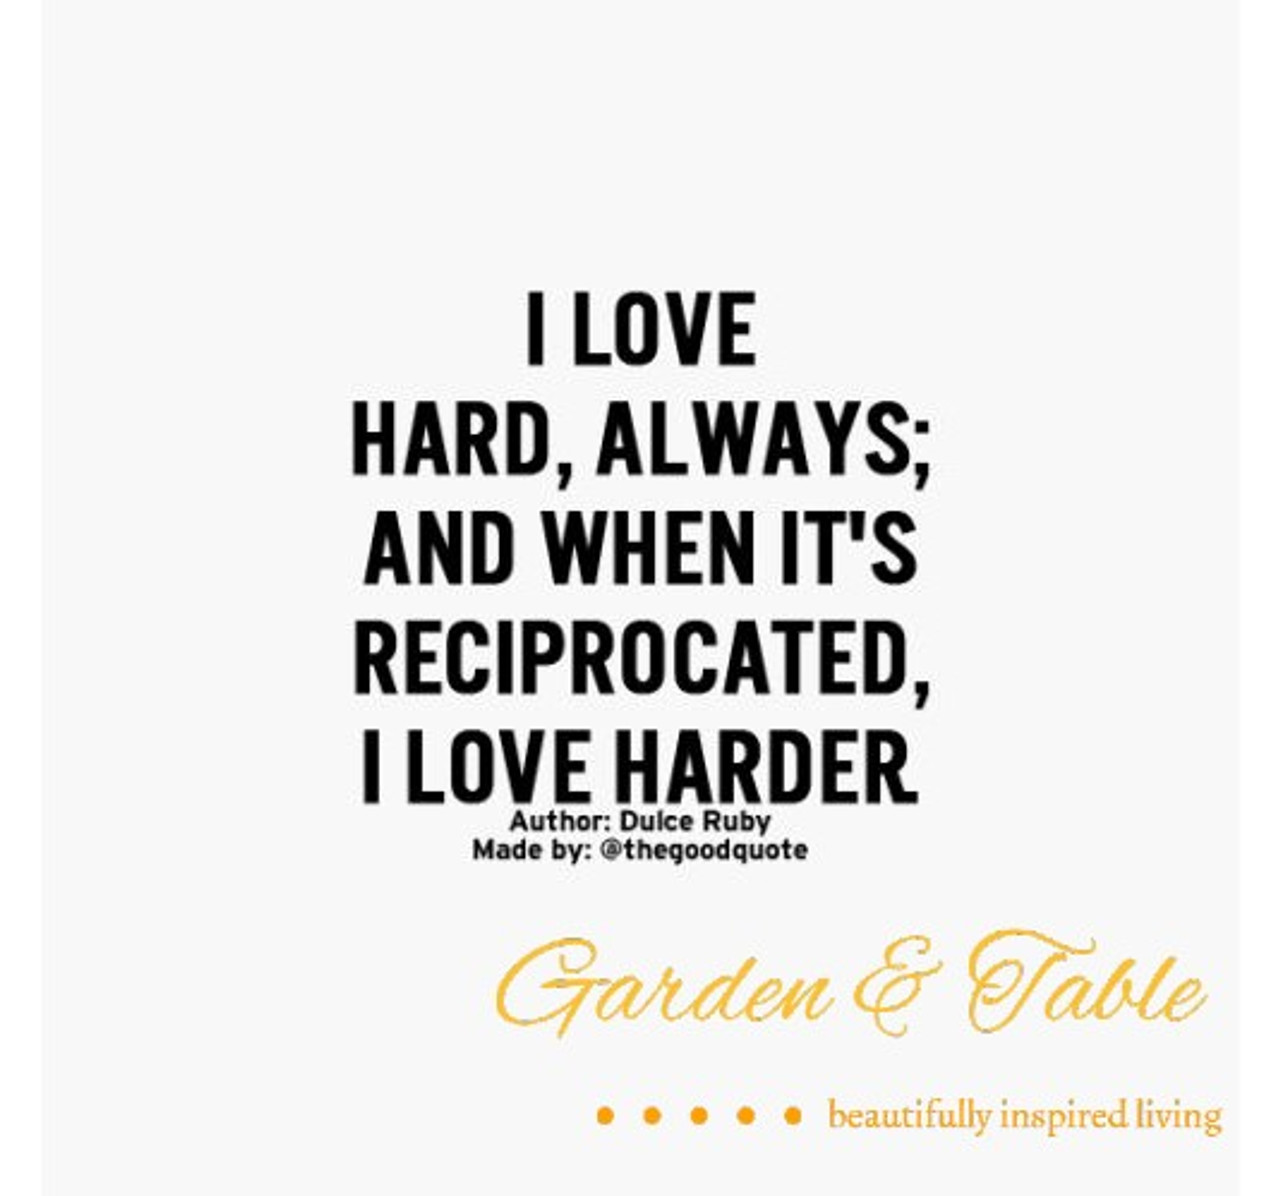 I love hard, always; and when its reciprocated, I love harder! #Quotes